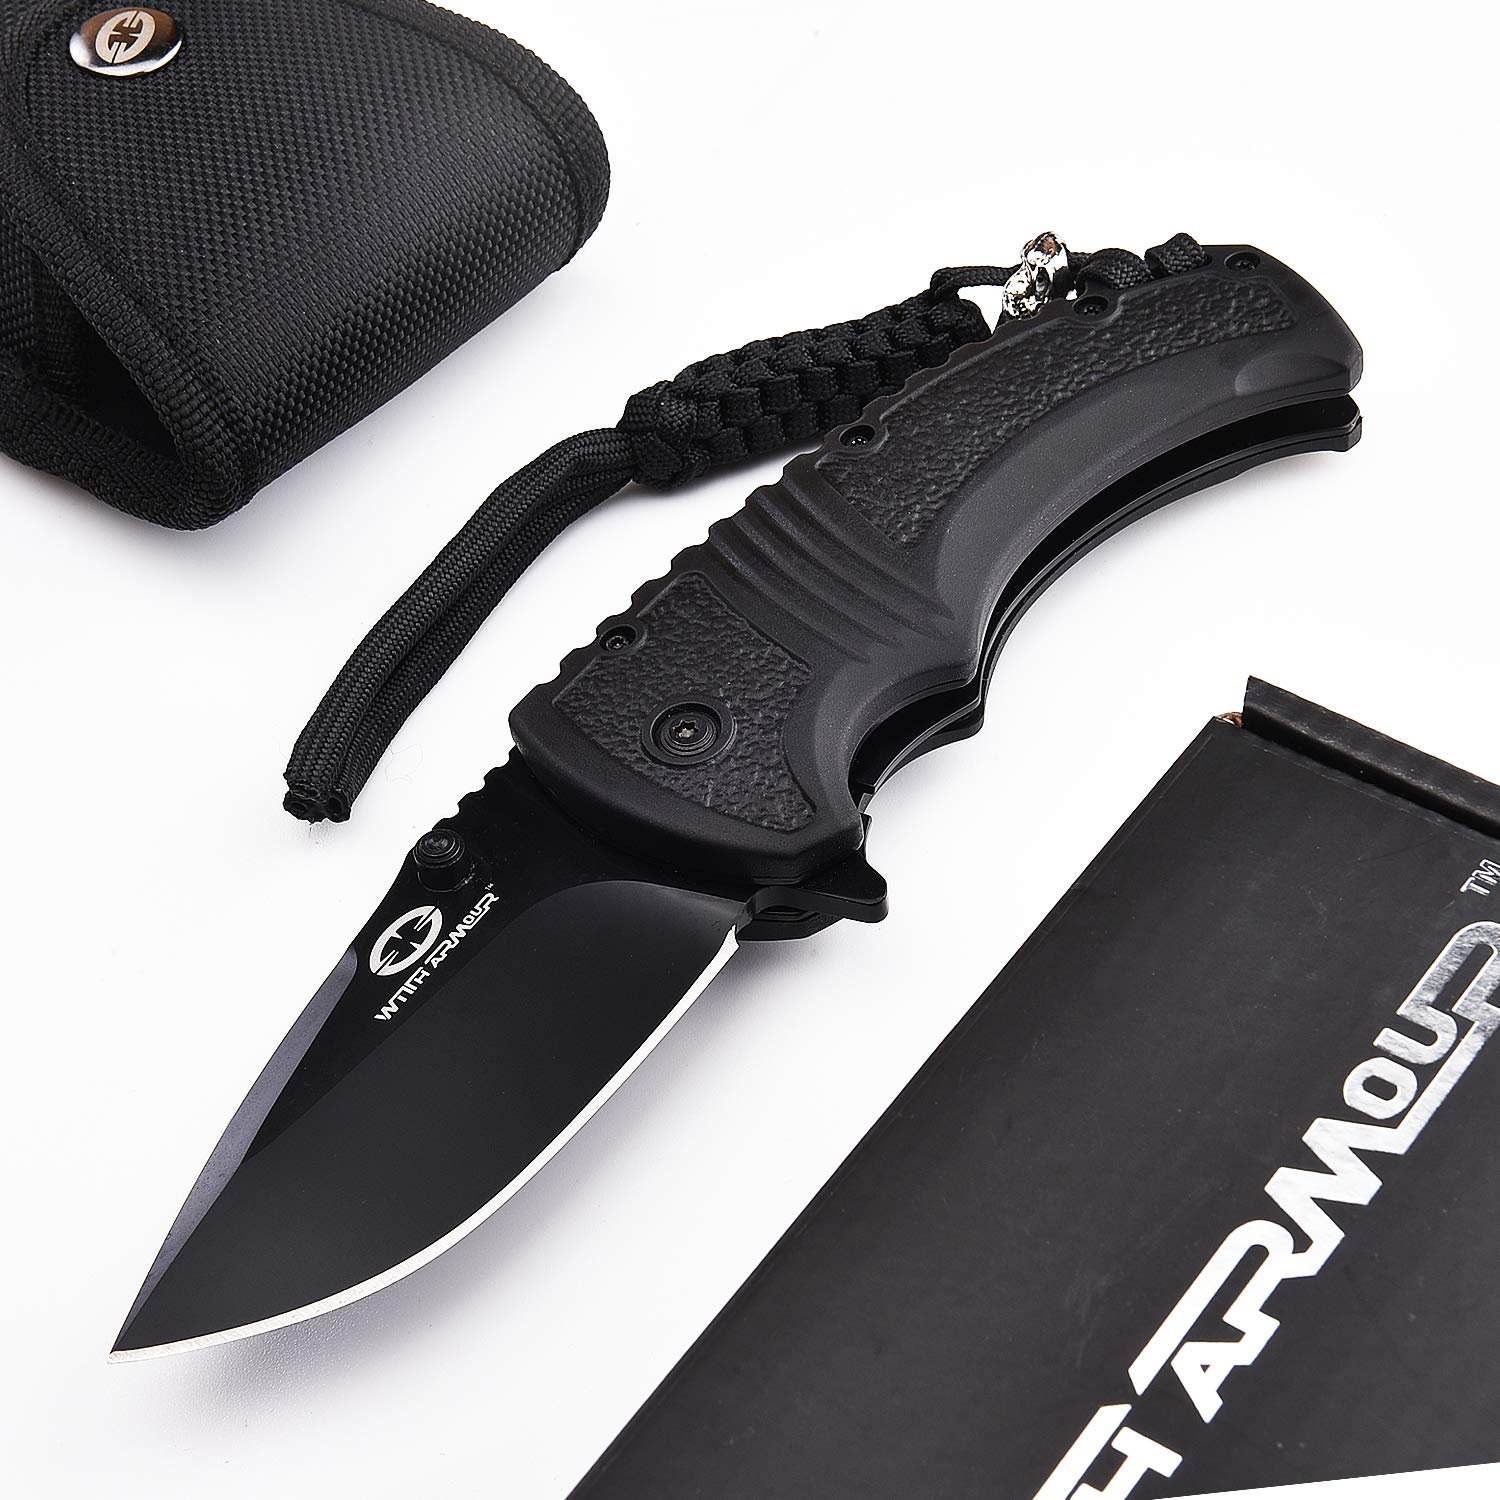 WITHARMOUR Spring Assisted Pocket Folding Knife Black B for Men with 440C Steel Blade and PP+TPR Handle with Color Box for Tactical Outdoor Survival Camping Hiking and Self Defense 4.75-inch closed